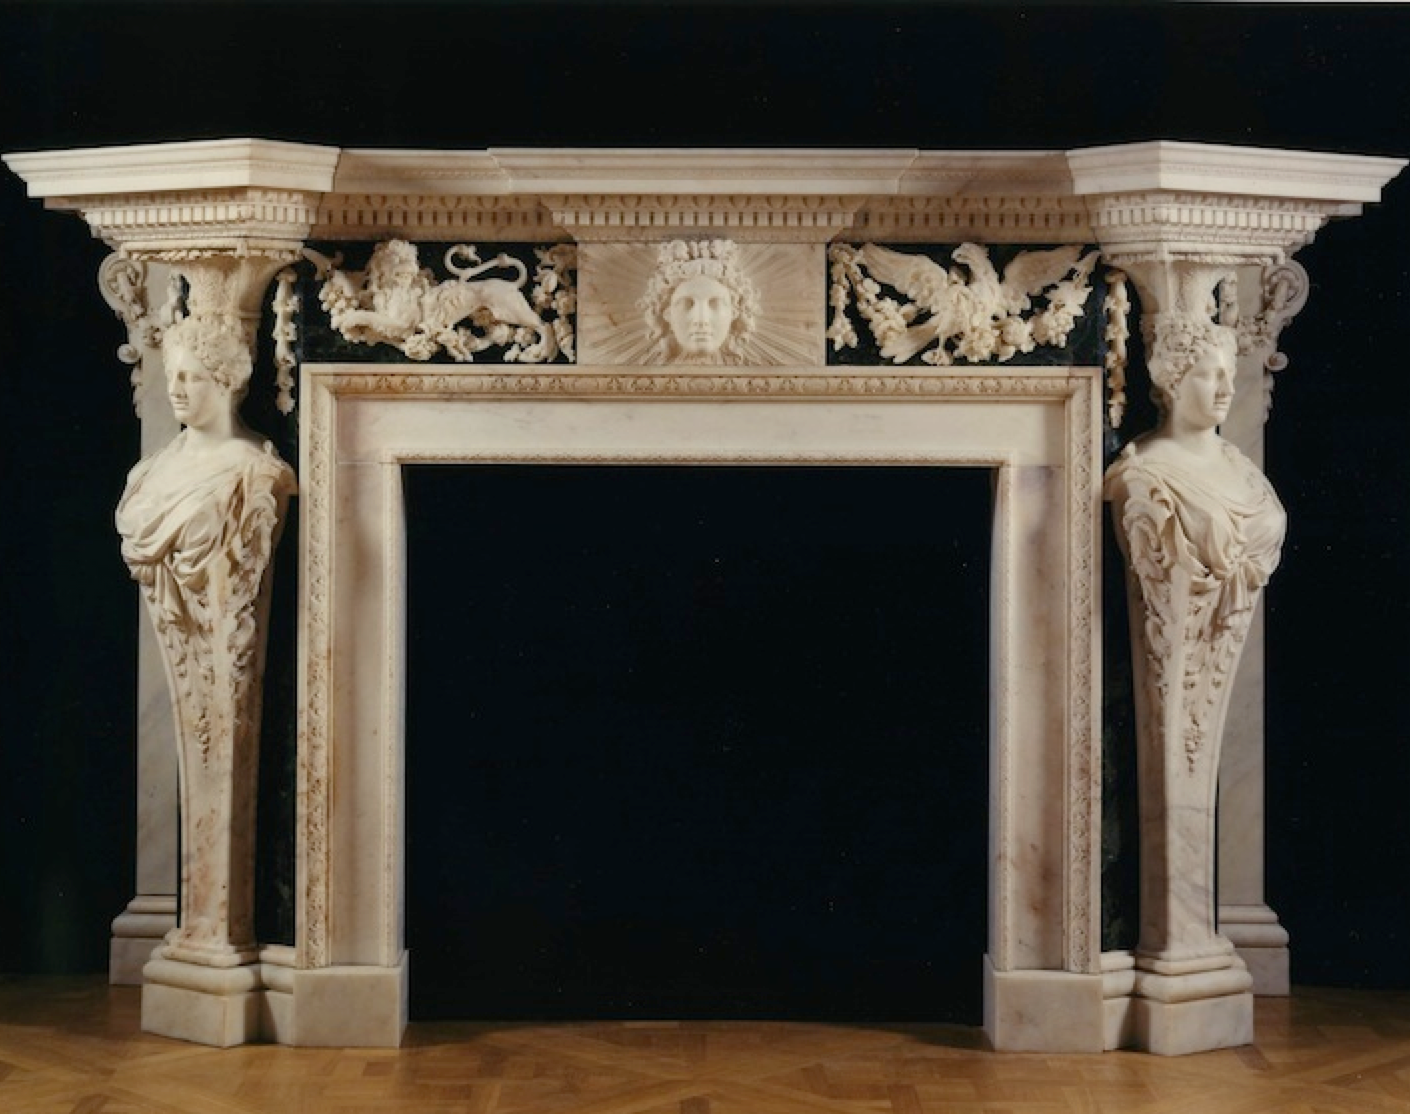 fireplace by kent for wanstead house ornamentos esculpidos